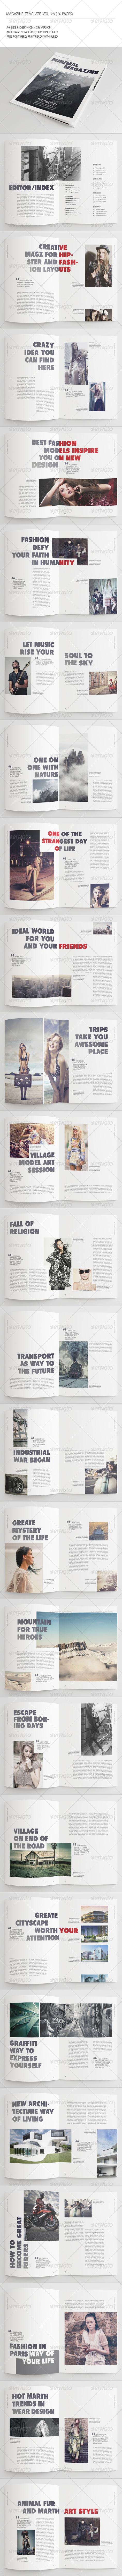 GraphicRiver 50 Pages Minimal Magazine Vol28 7193484